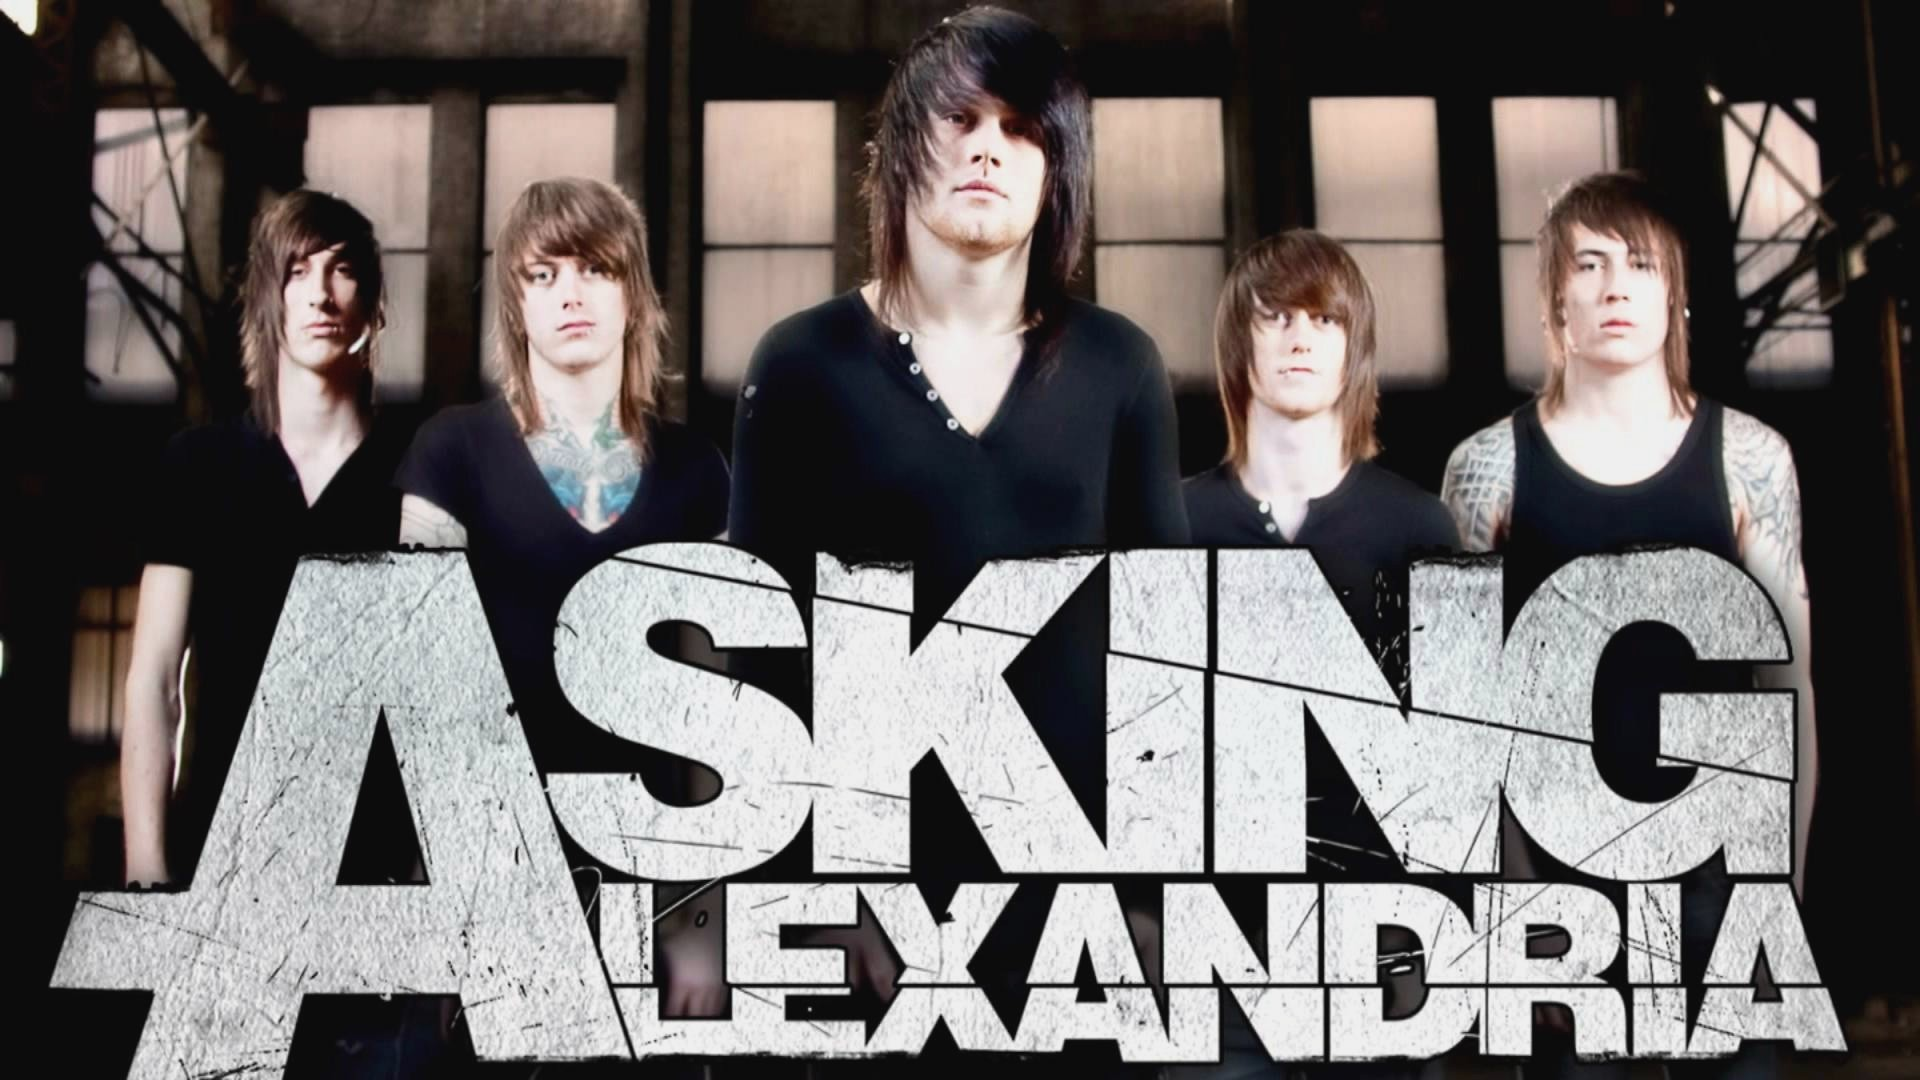 1920x1080 Asking Alexandria Wallpaper Full HD.